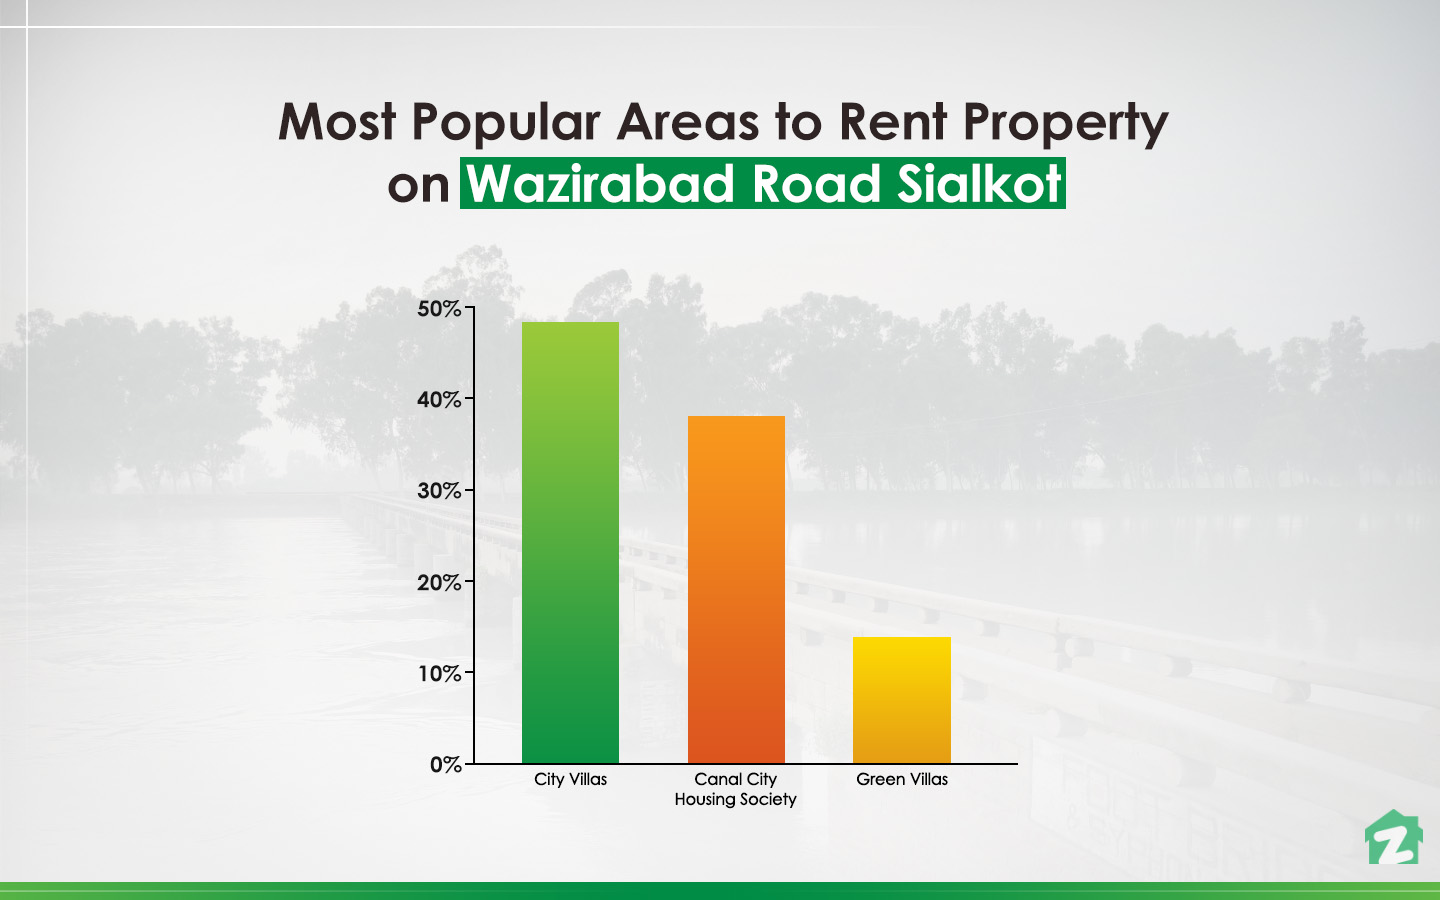 Zameen statistics for popular phases of Wazirabad Road, Sialkot to rent property